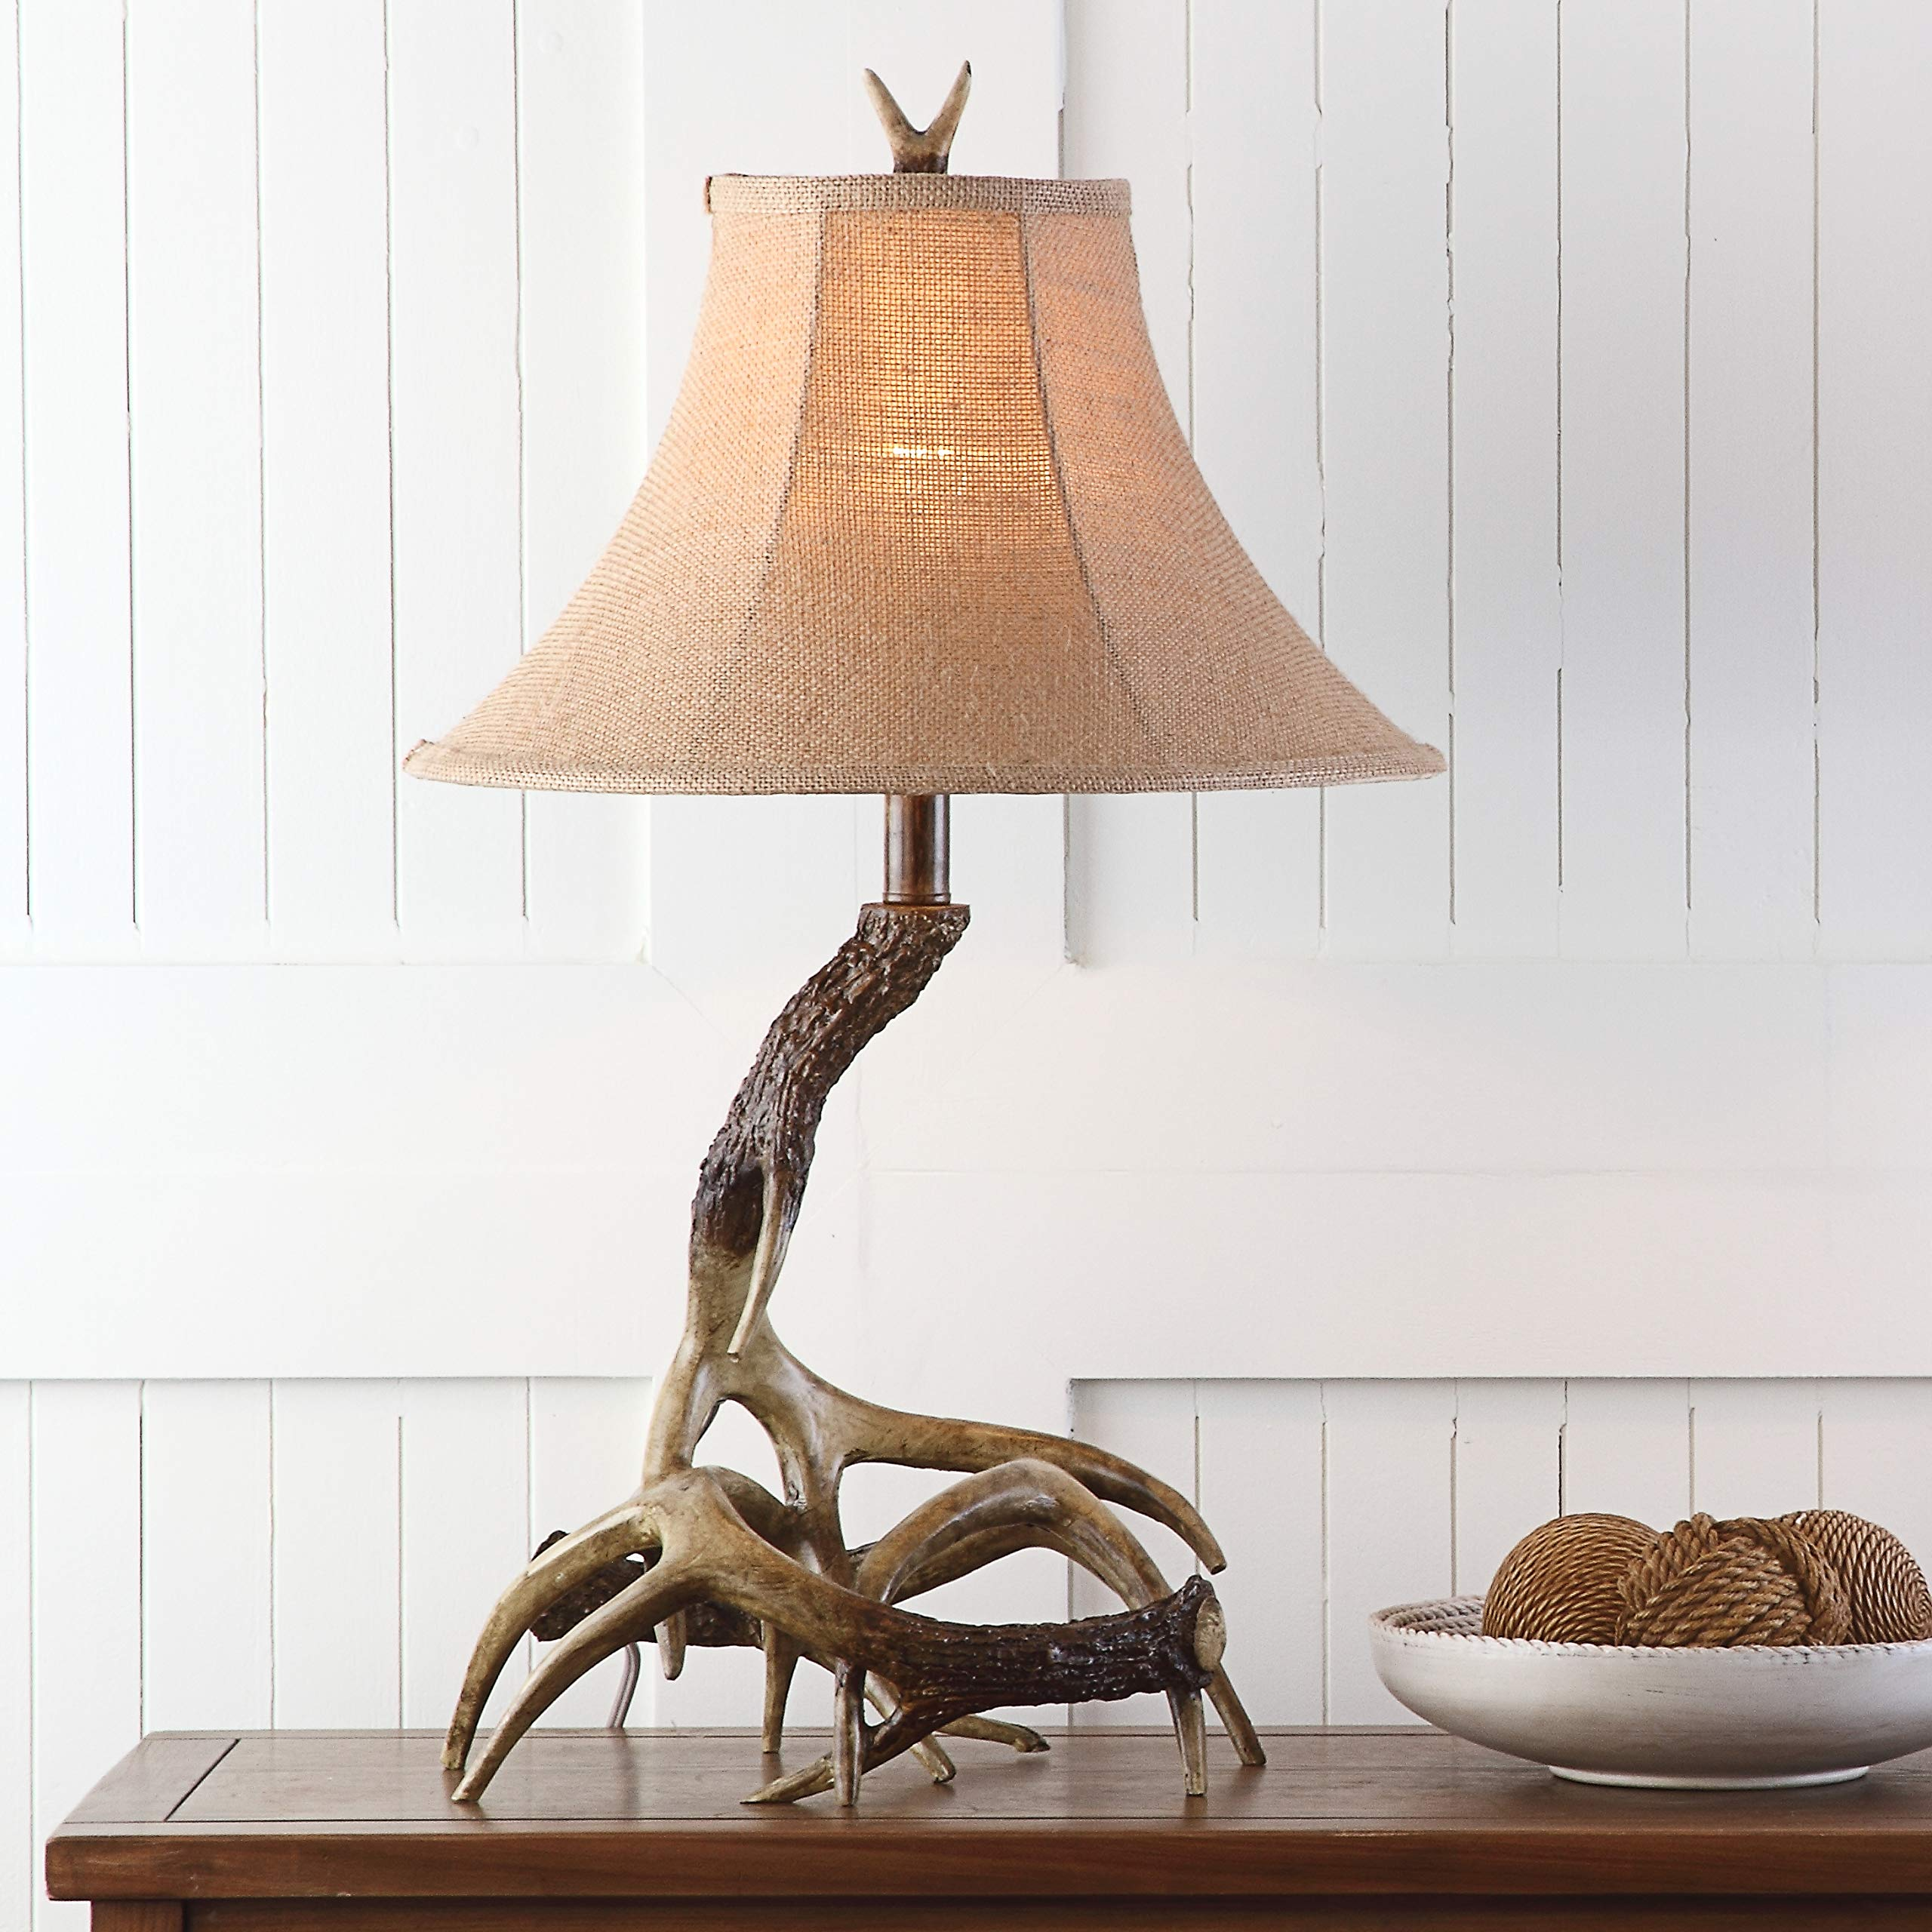 Safavieh LITS4140A Lighting Sundance Brown Faux Antler 25.5-inch (Bulb Included) Table Lamp